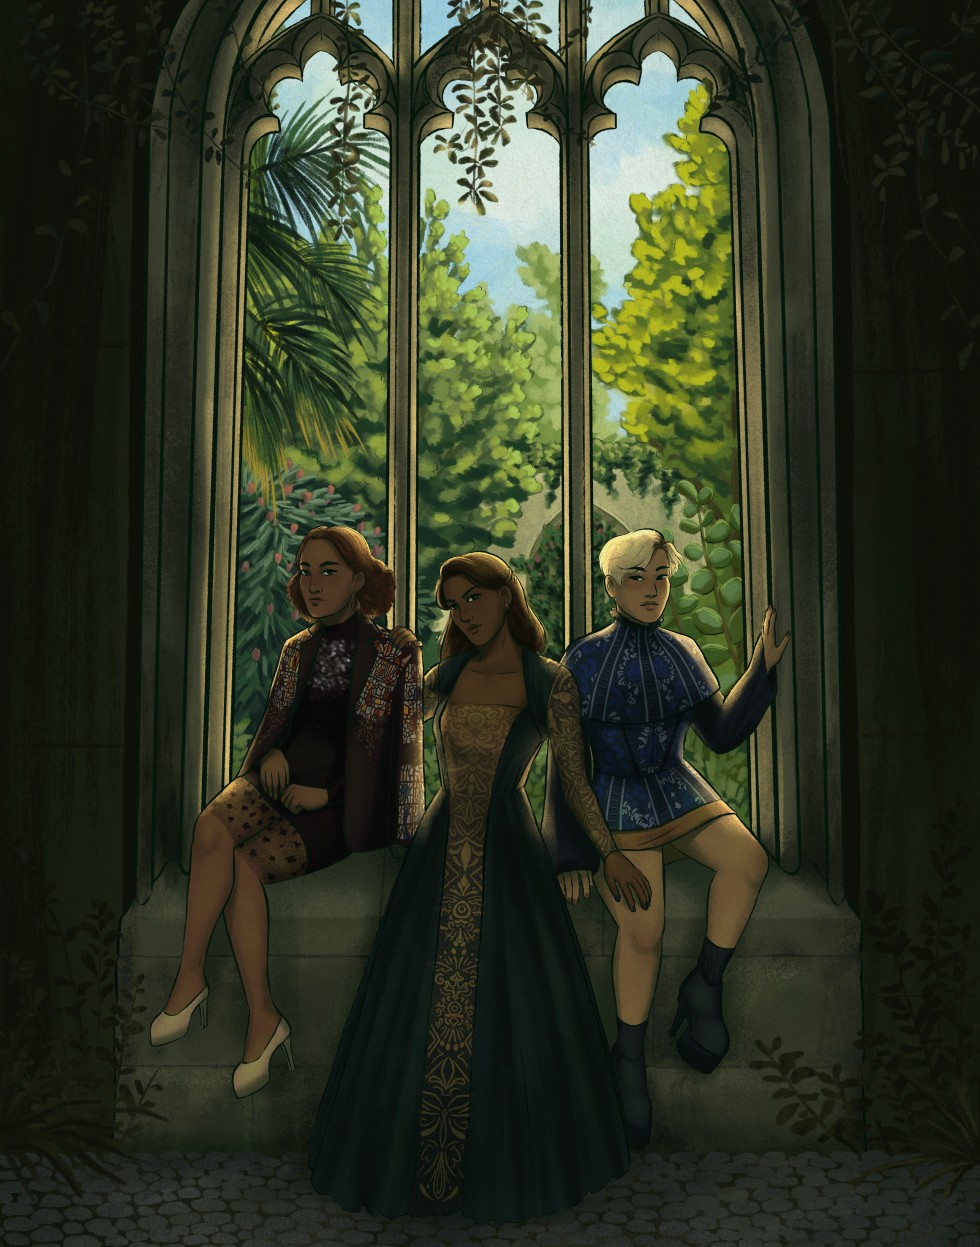 A digital art piece that features three figures sitting in a park, in front of a stone gothic arched window with no glass. The figure on the left is sitting on the window sill. She has curly red chin length hair, and is wearing a beaded black dress and ja